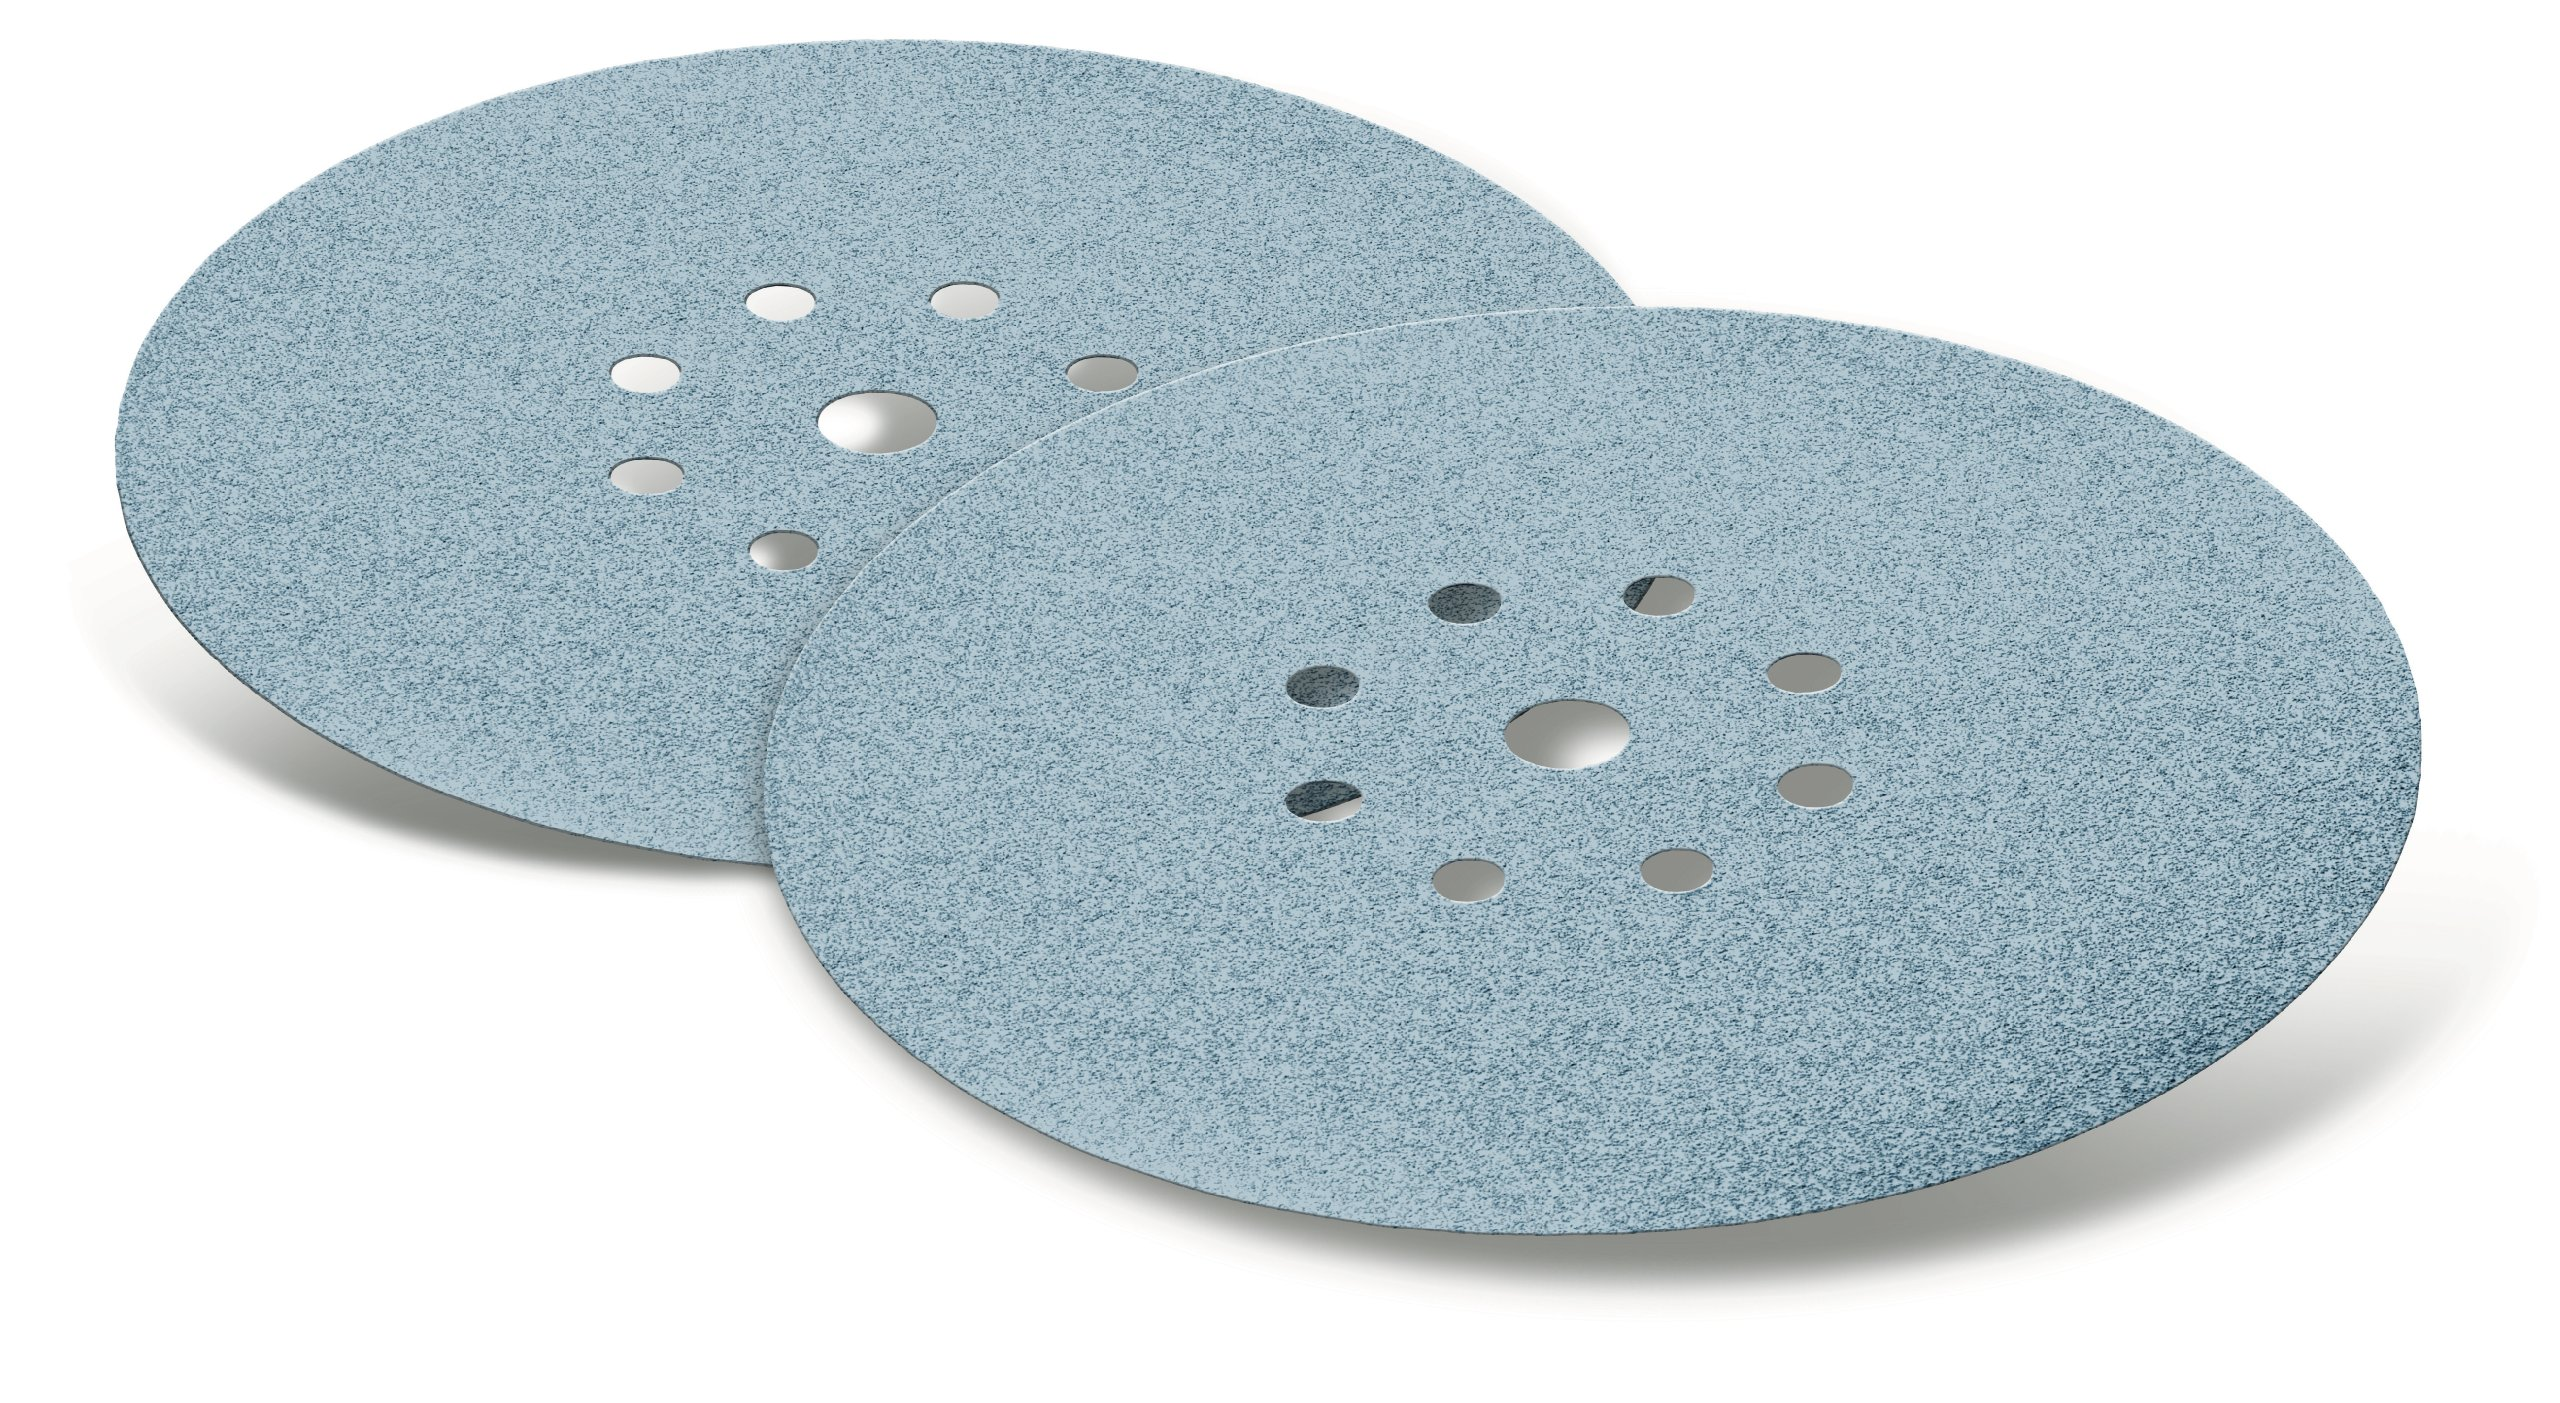 Festool 499643 Granat Abrasives D225 P320, 25-Pack